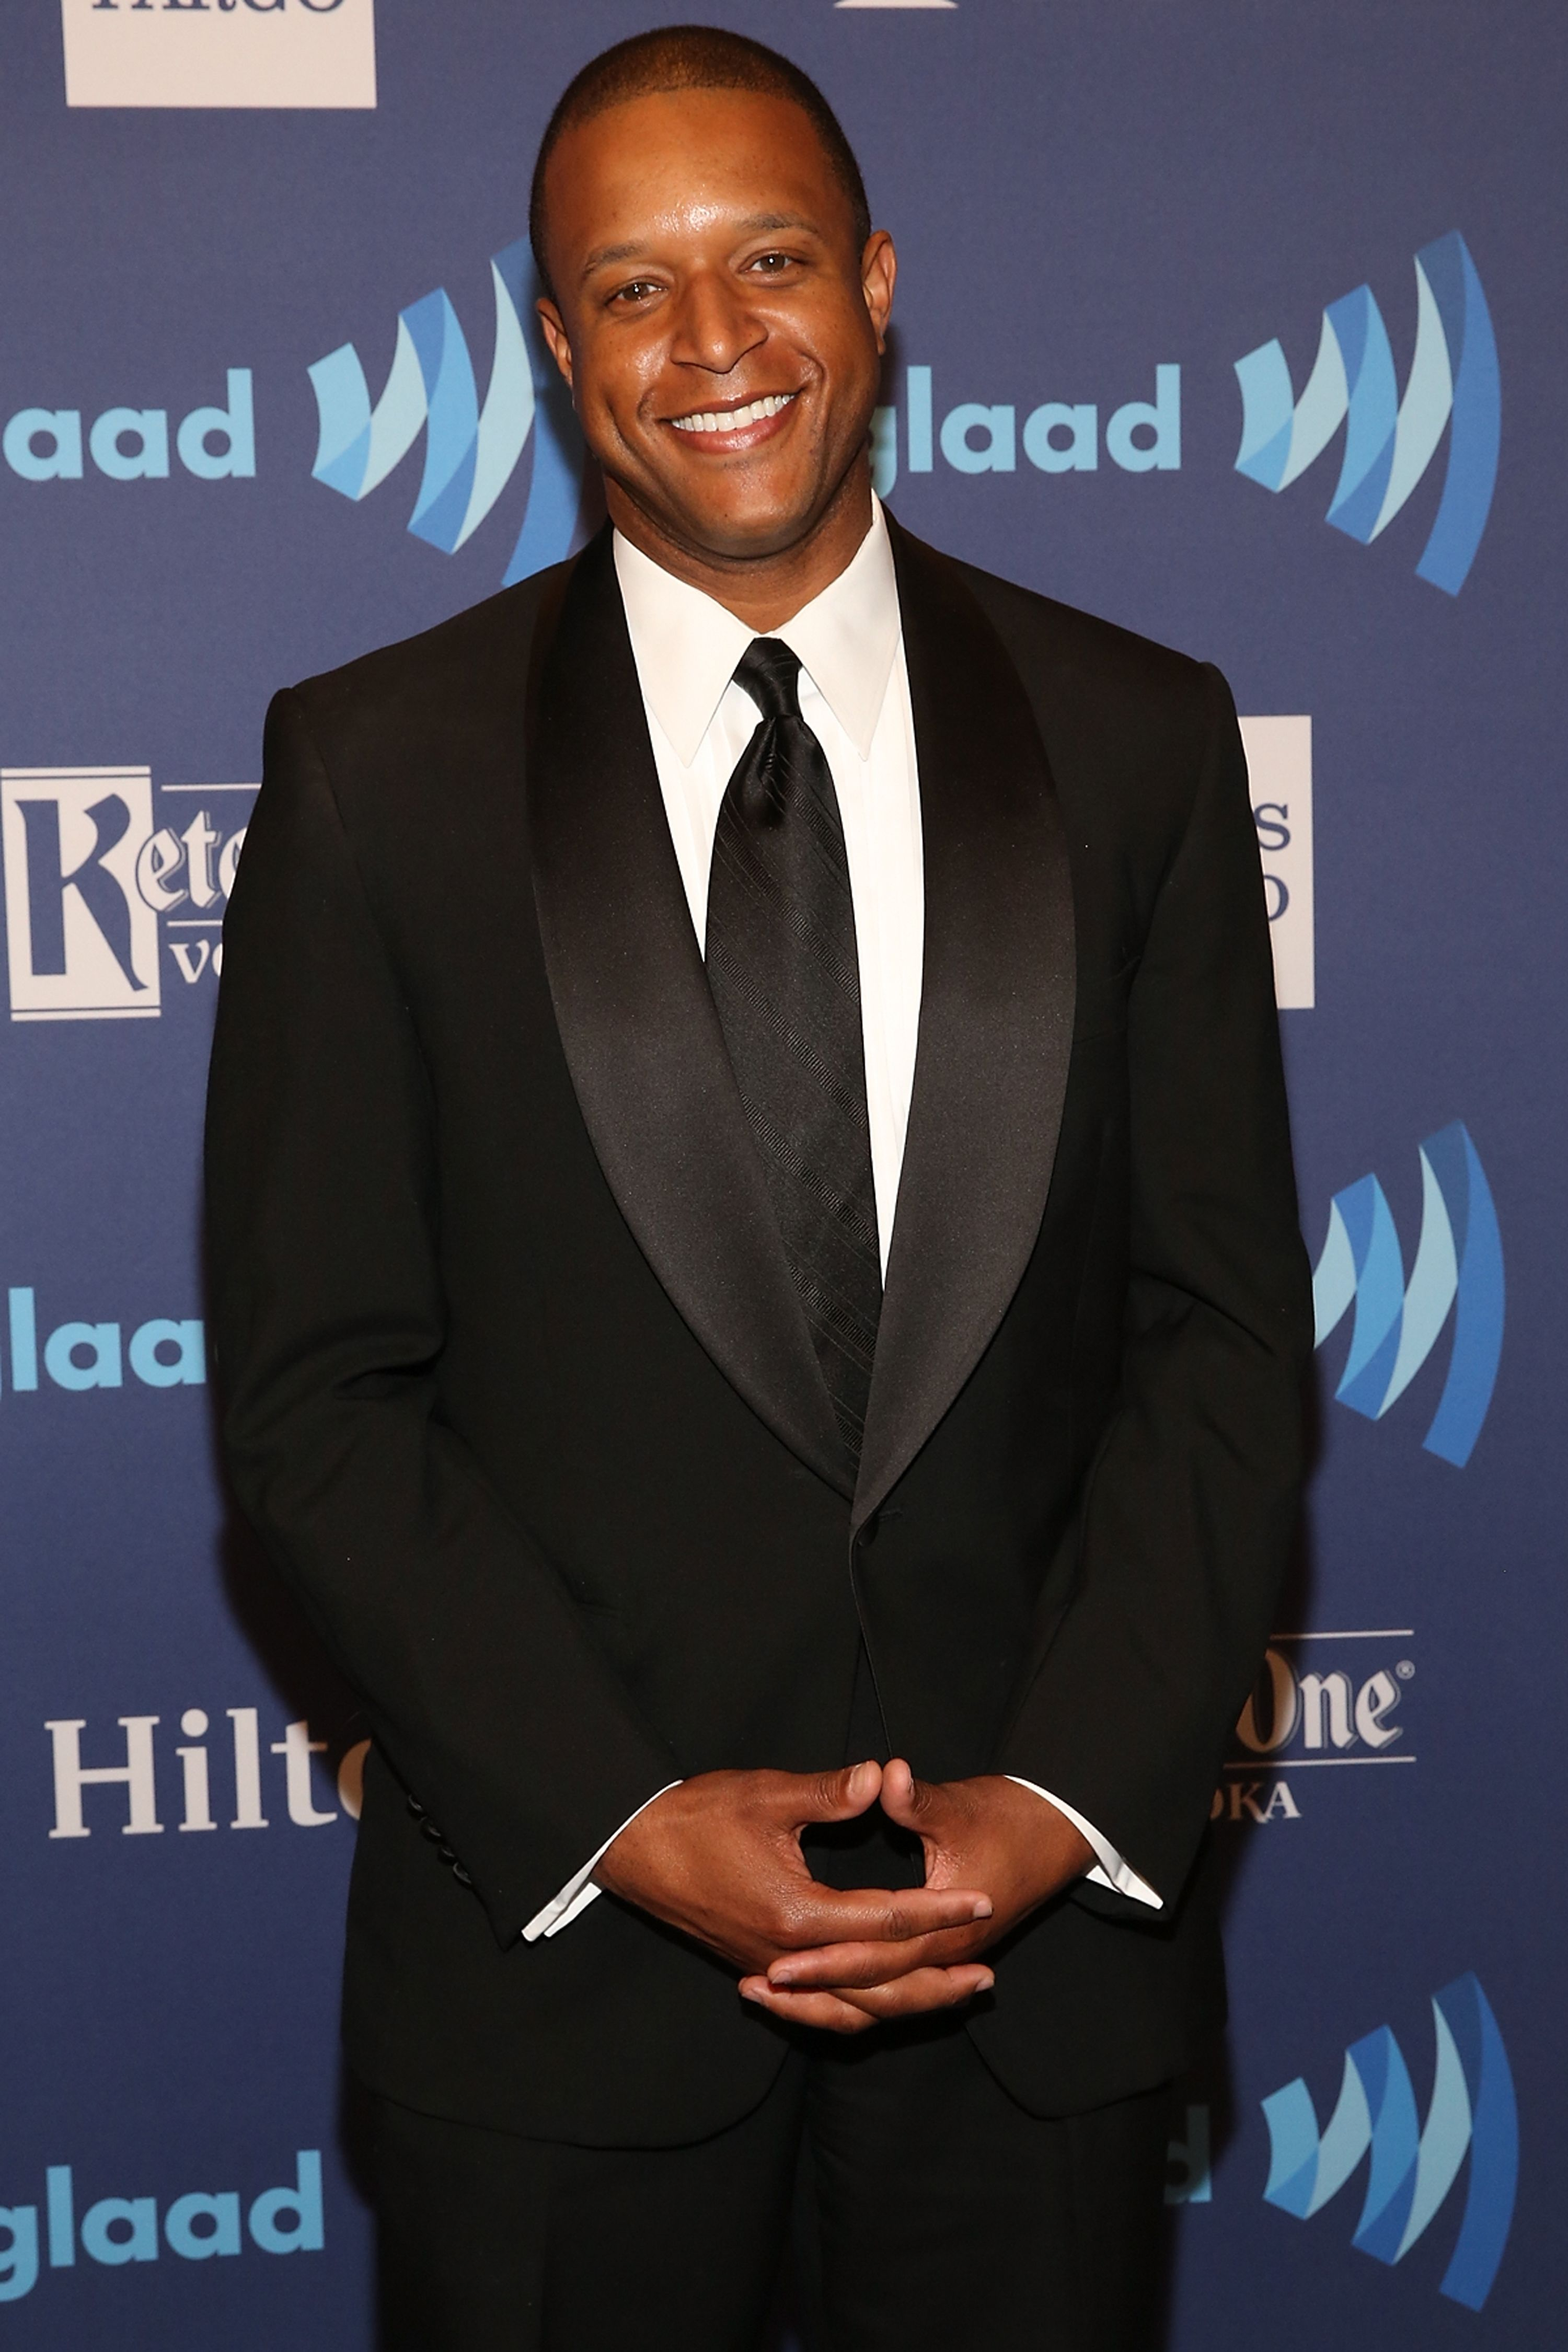 Craig Melvin attends the 26th Annual GLAAD Media Awards at The Waldorf Astoria on May 9, 2015. | Photo: Getty Images